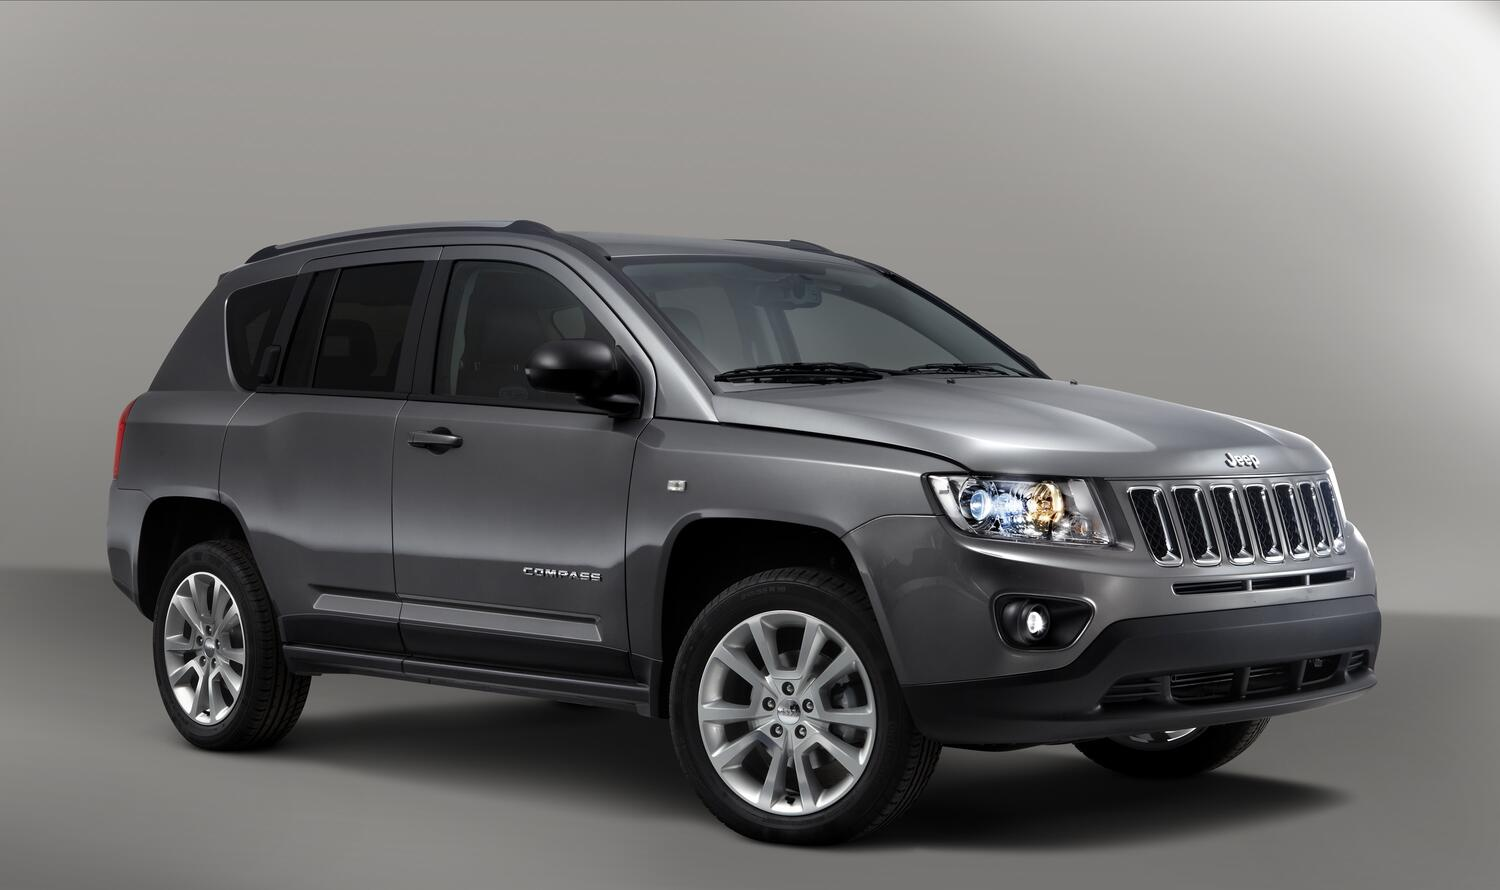 2013 Jeep Compass Review Ratings Specs Prices And